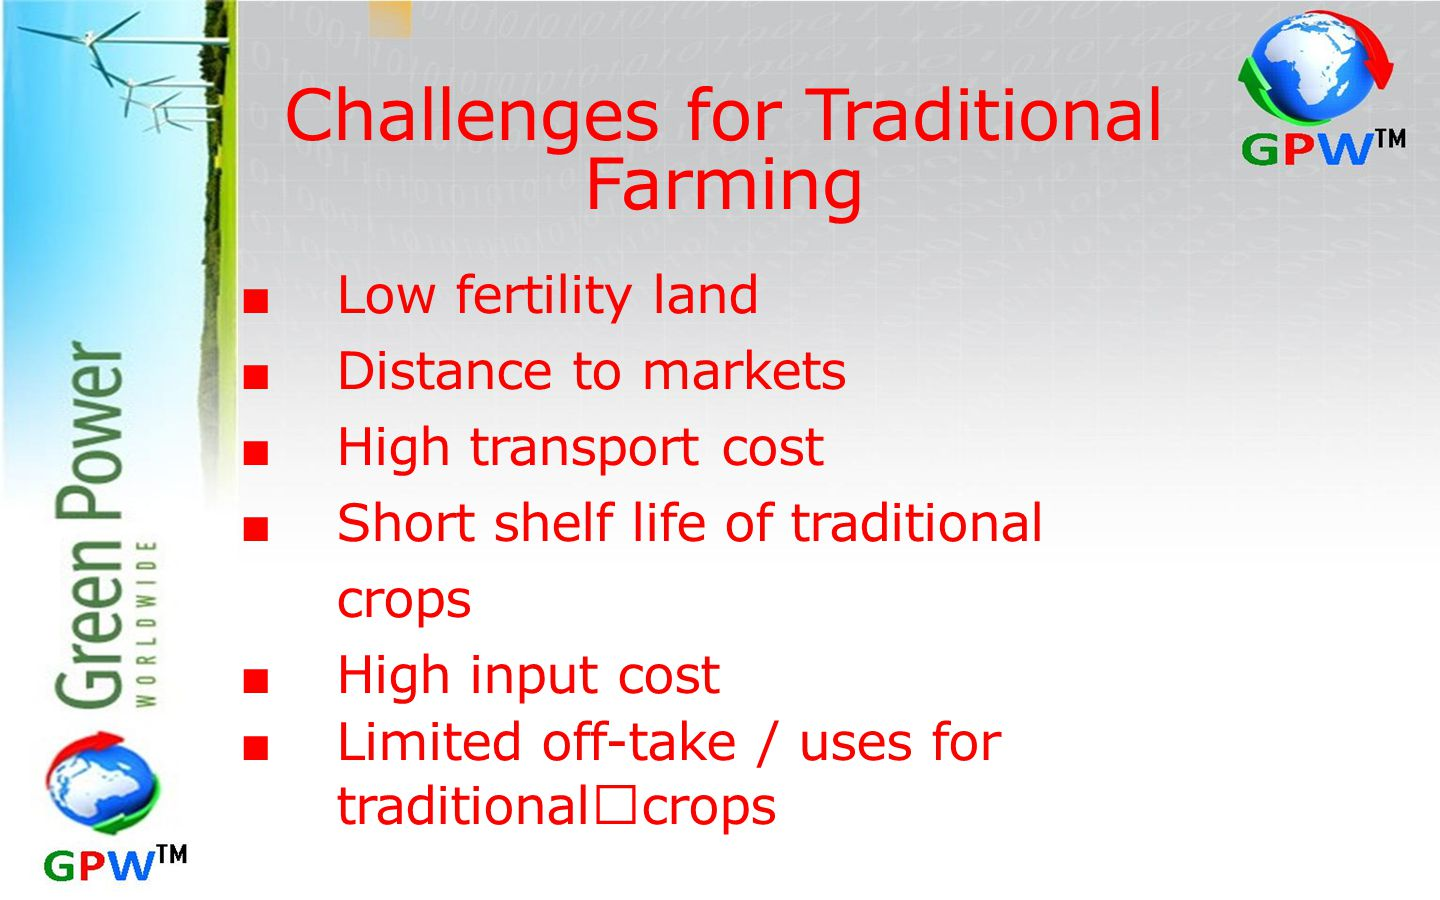 Challenges for Traditional Farming ■ Low fertility land ■ Distance to markets ■ High transport cost ■ Short shelf life of traditional crops ■ High input cost ■ Limited off-take / uses for traditional crops